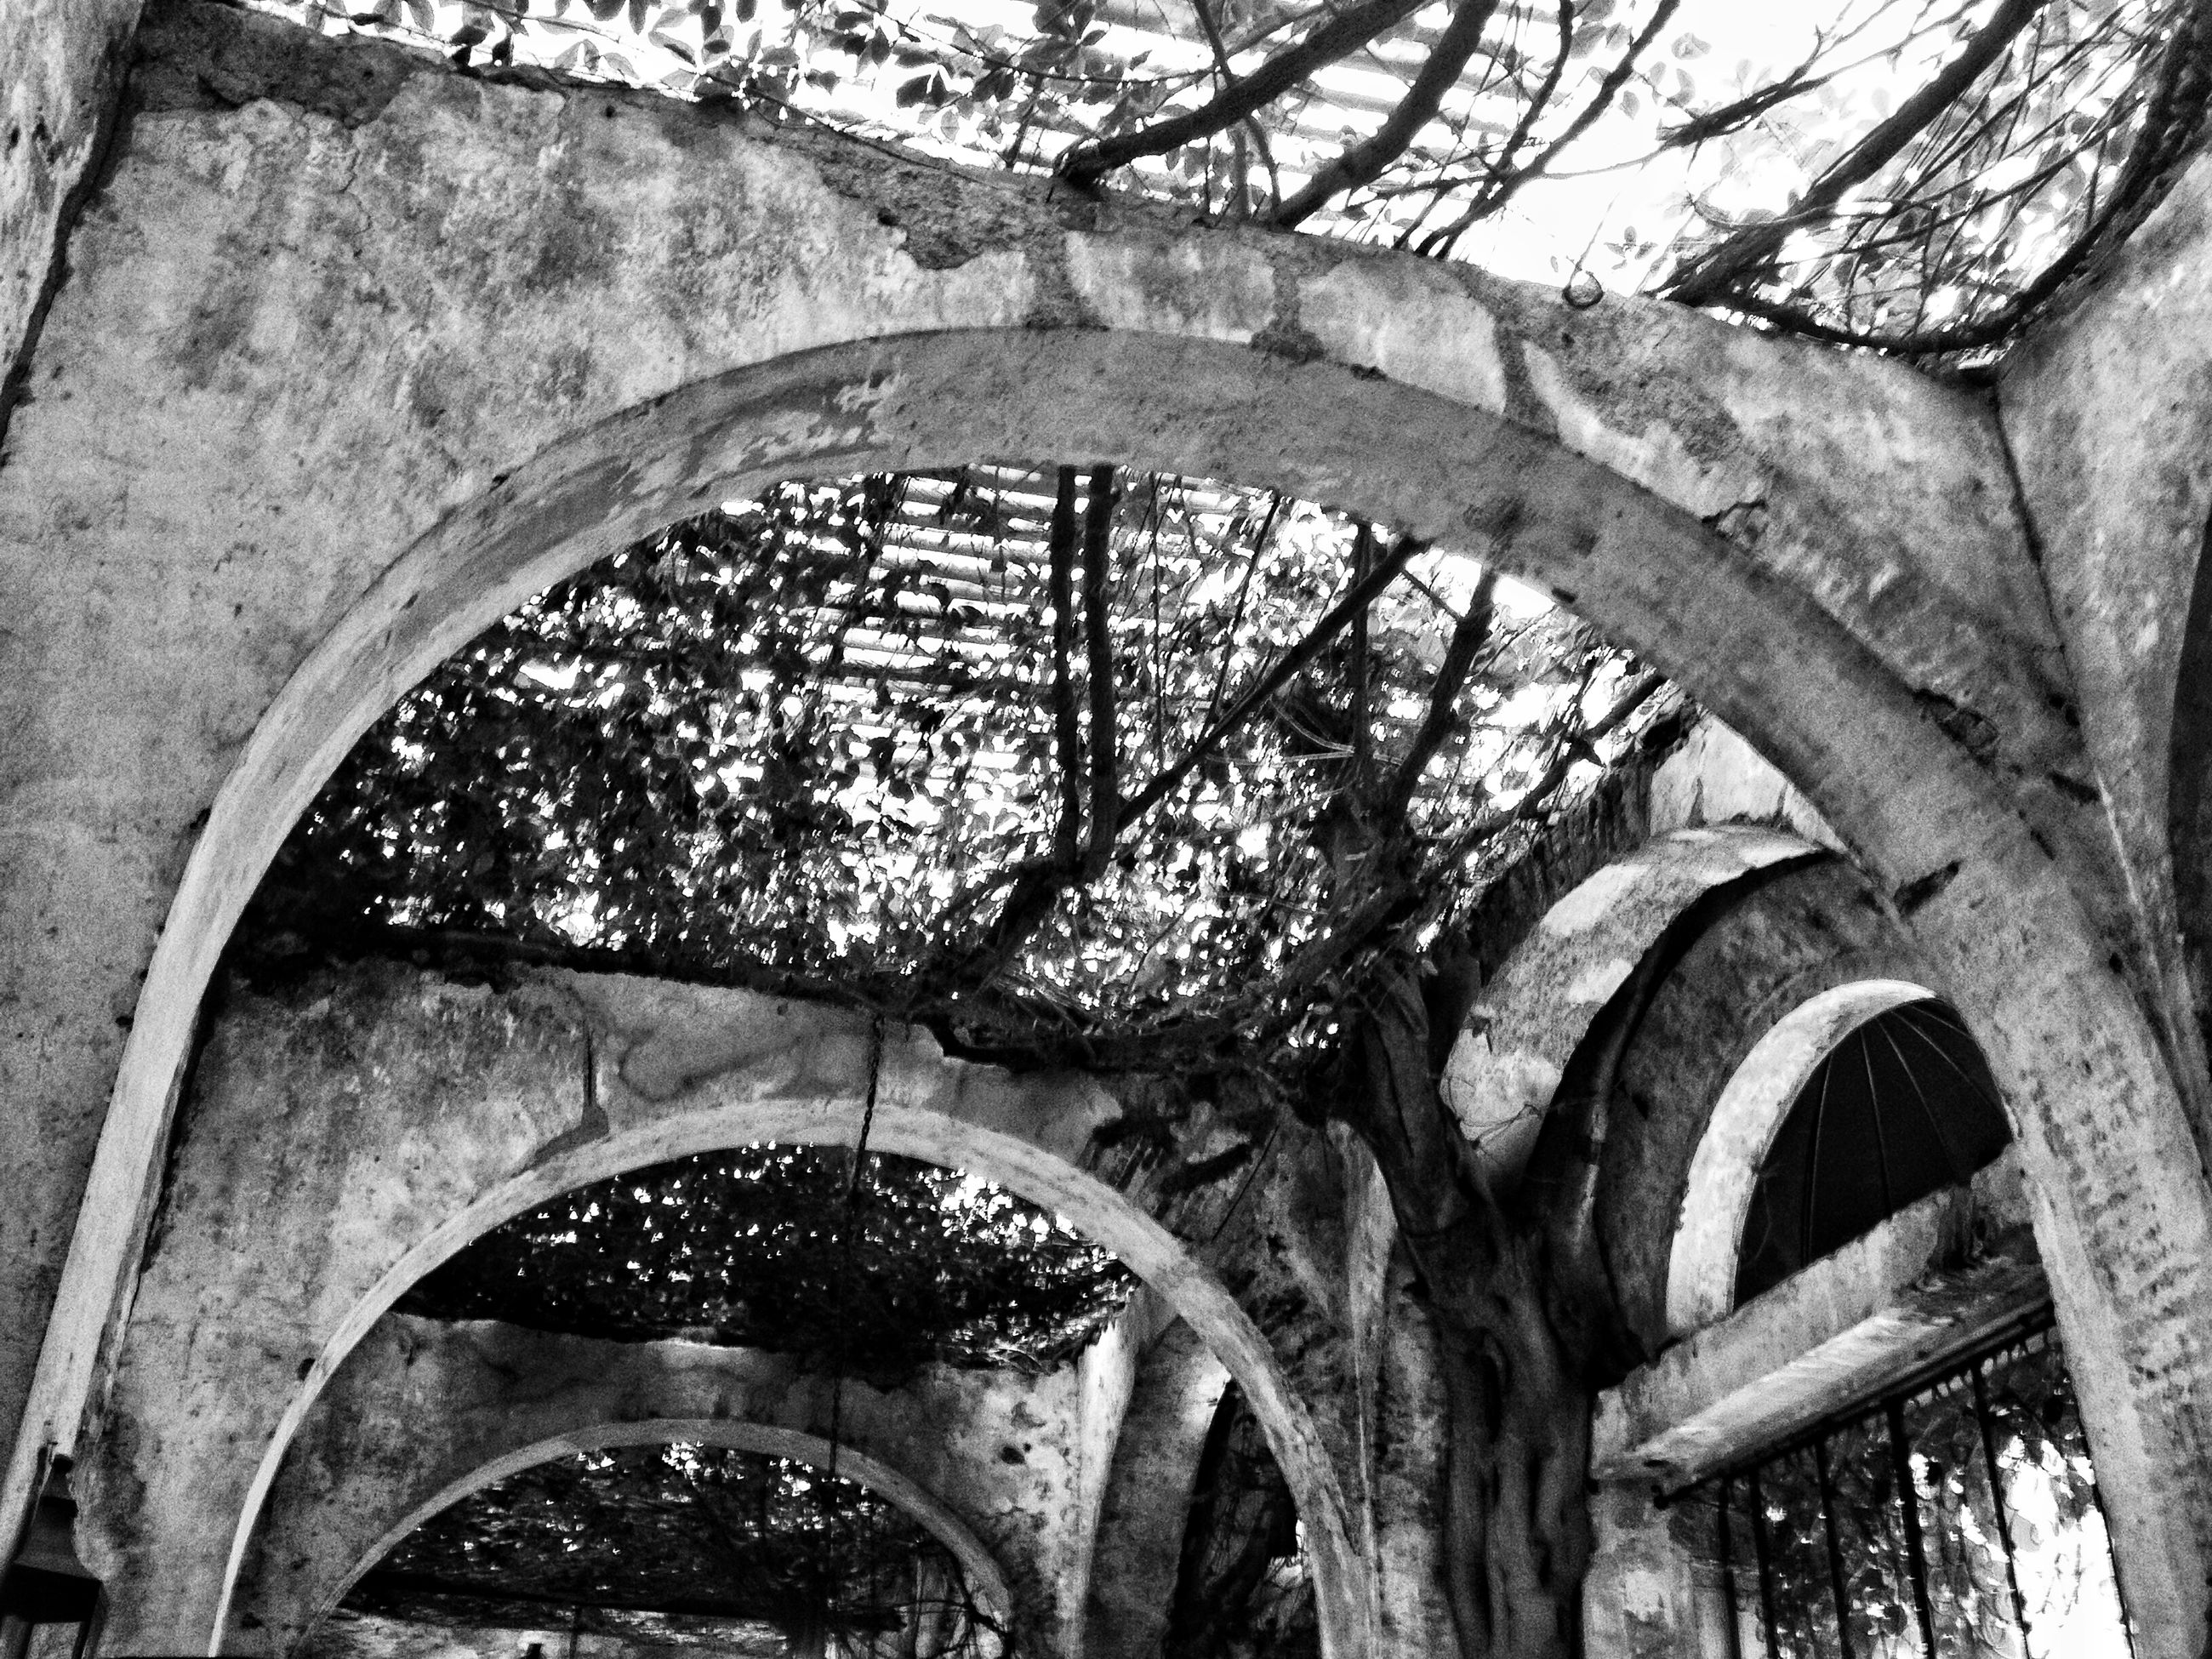 architecture, built structure, arch, tree, old, low angle view, abandoned, history, circle, metal, day, no people, building exterior, weathered, damaged, branch, outdoors, archway, bare tree, sky